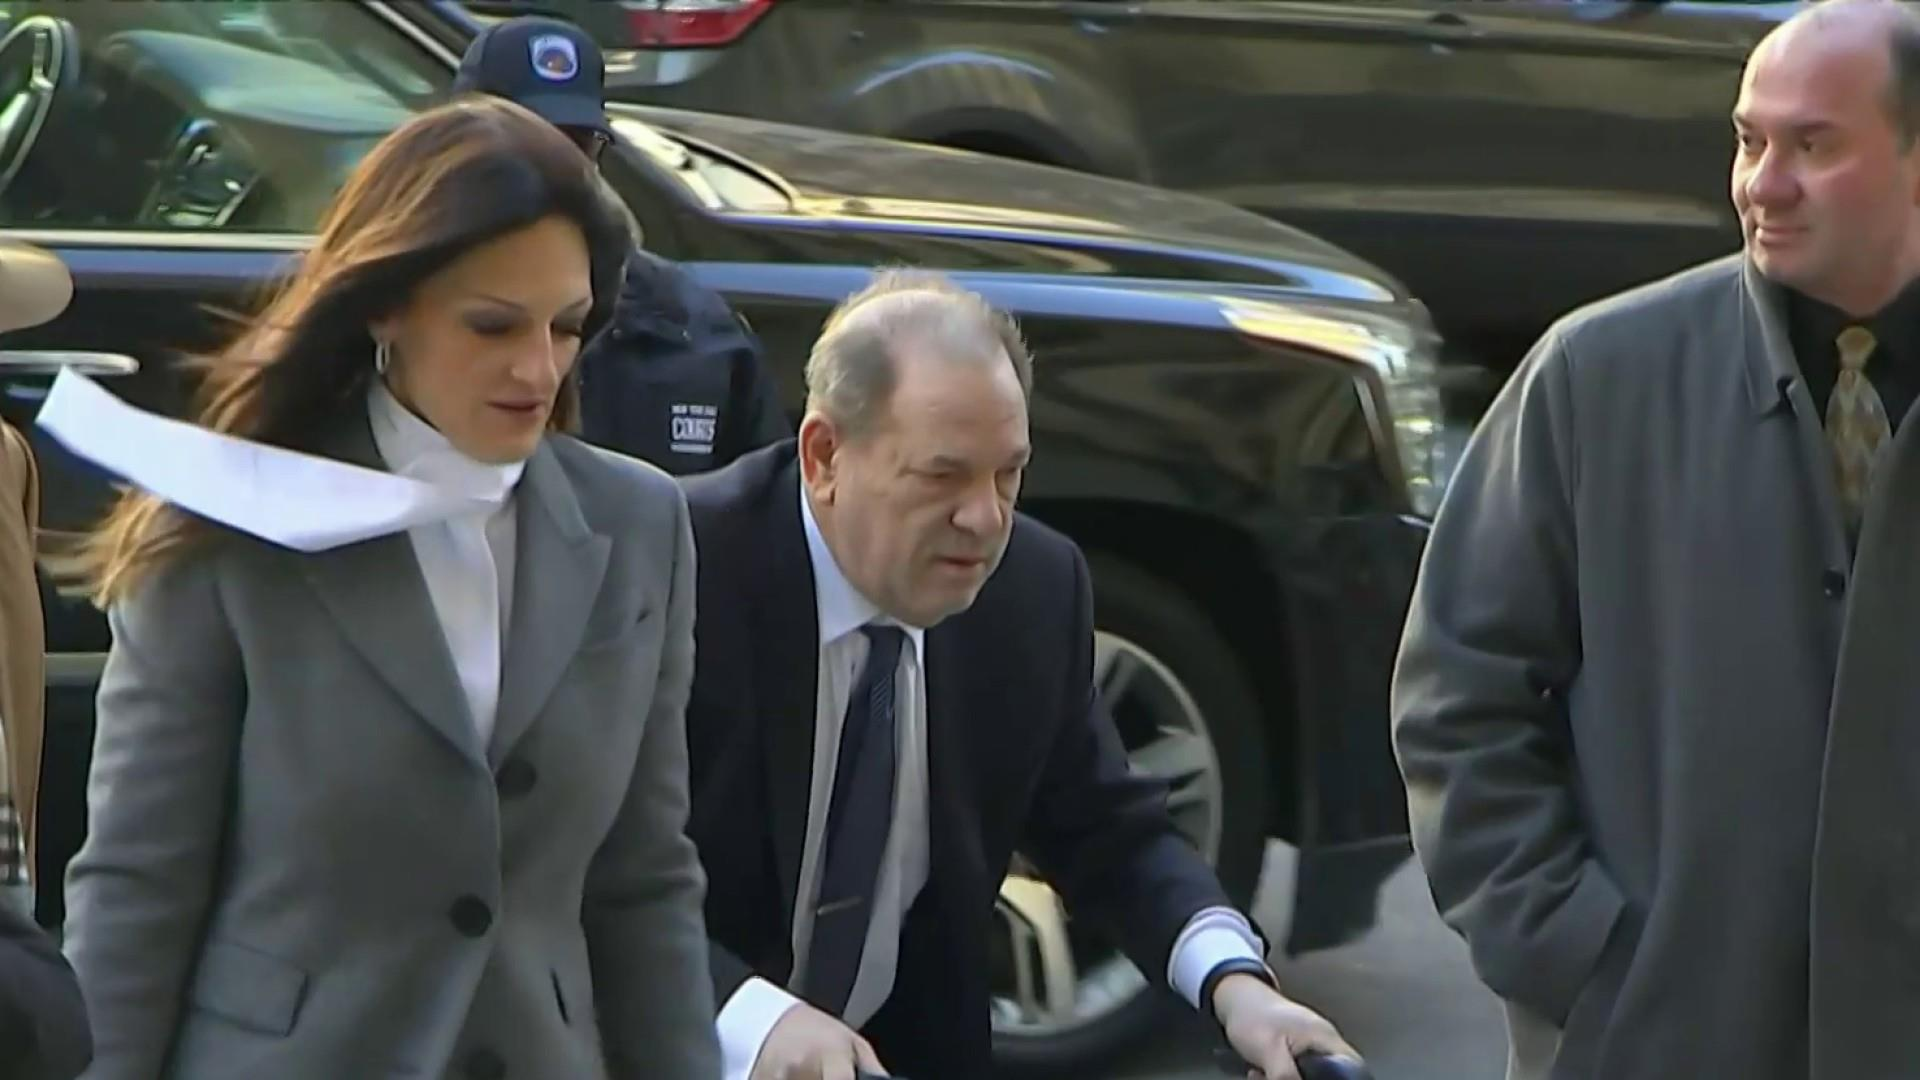 Harvey Weinstein jury says they are deadlocked; judge orders them to keep deliberating